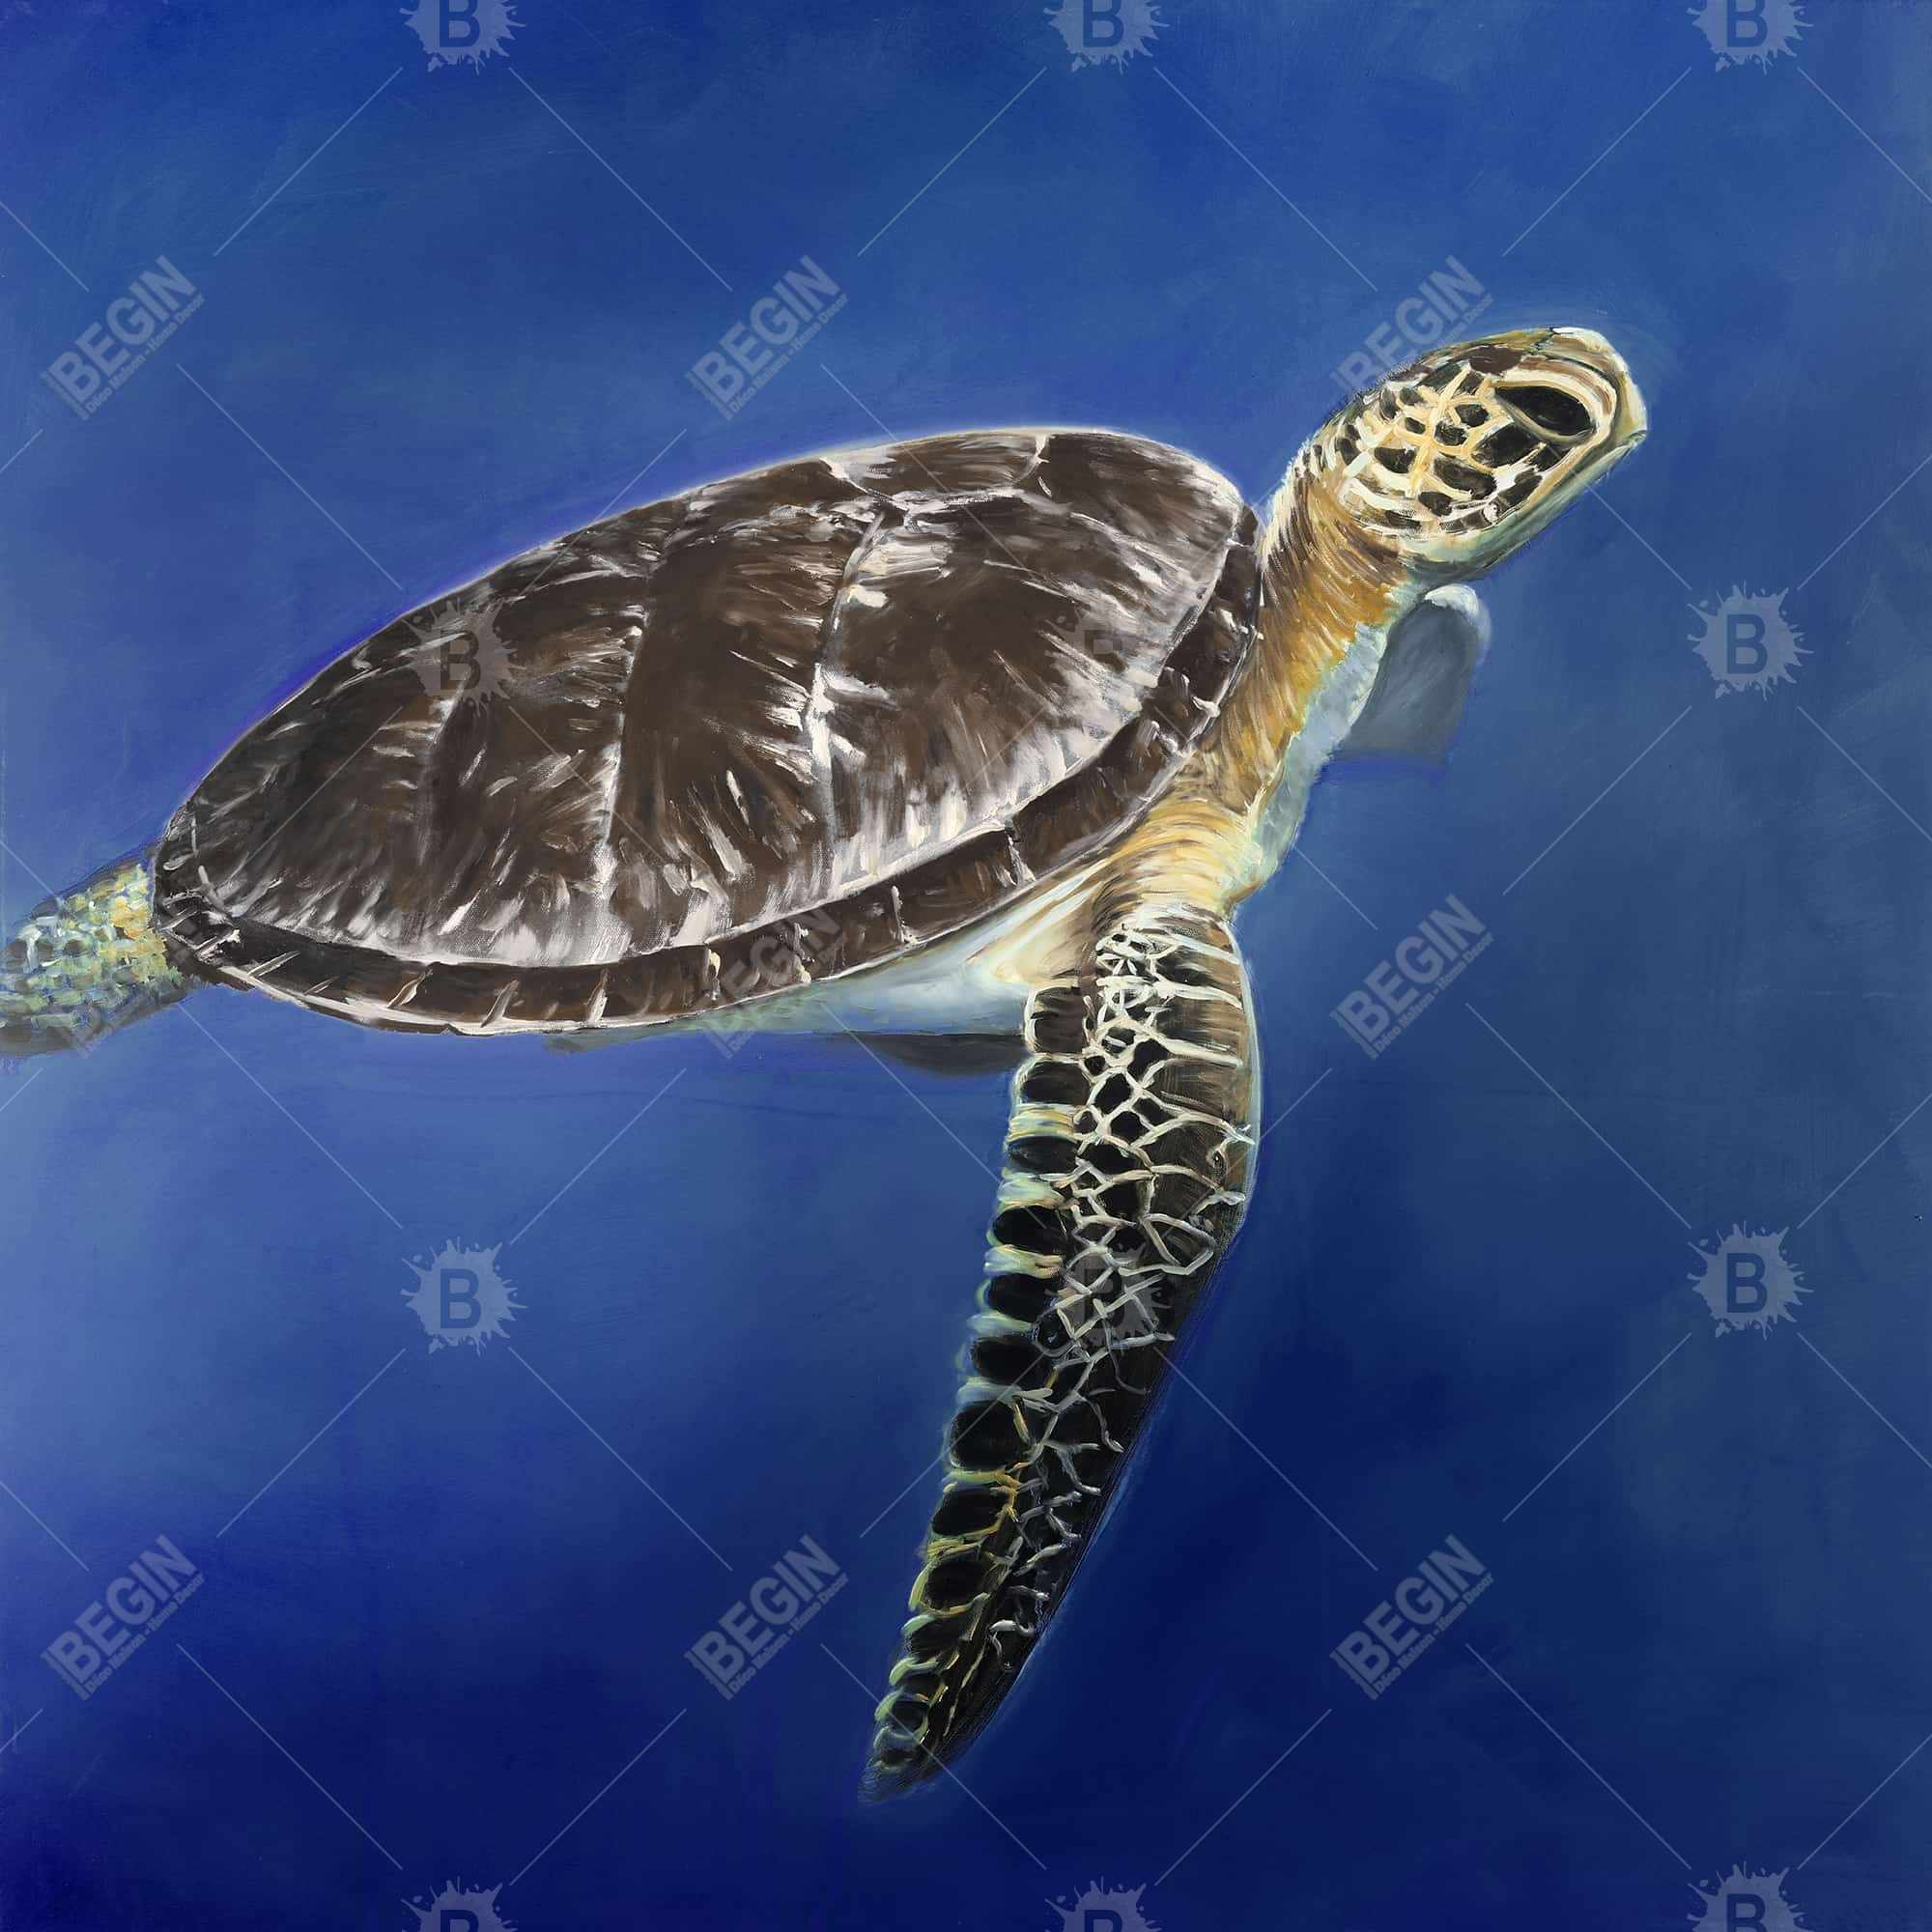 Turtle in the ocean